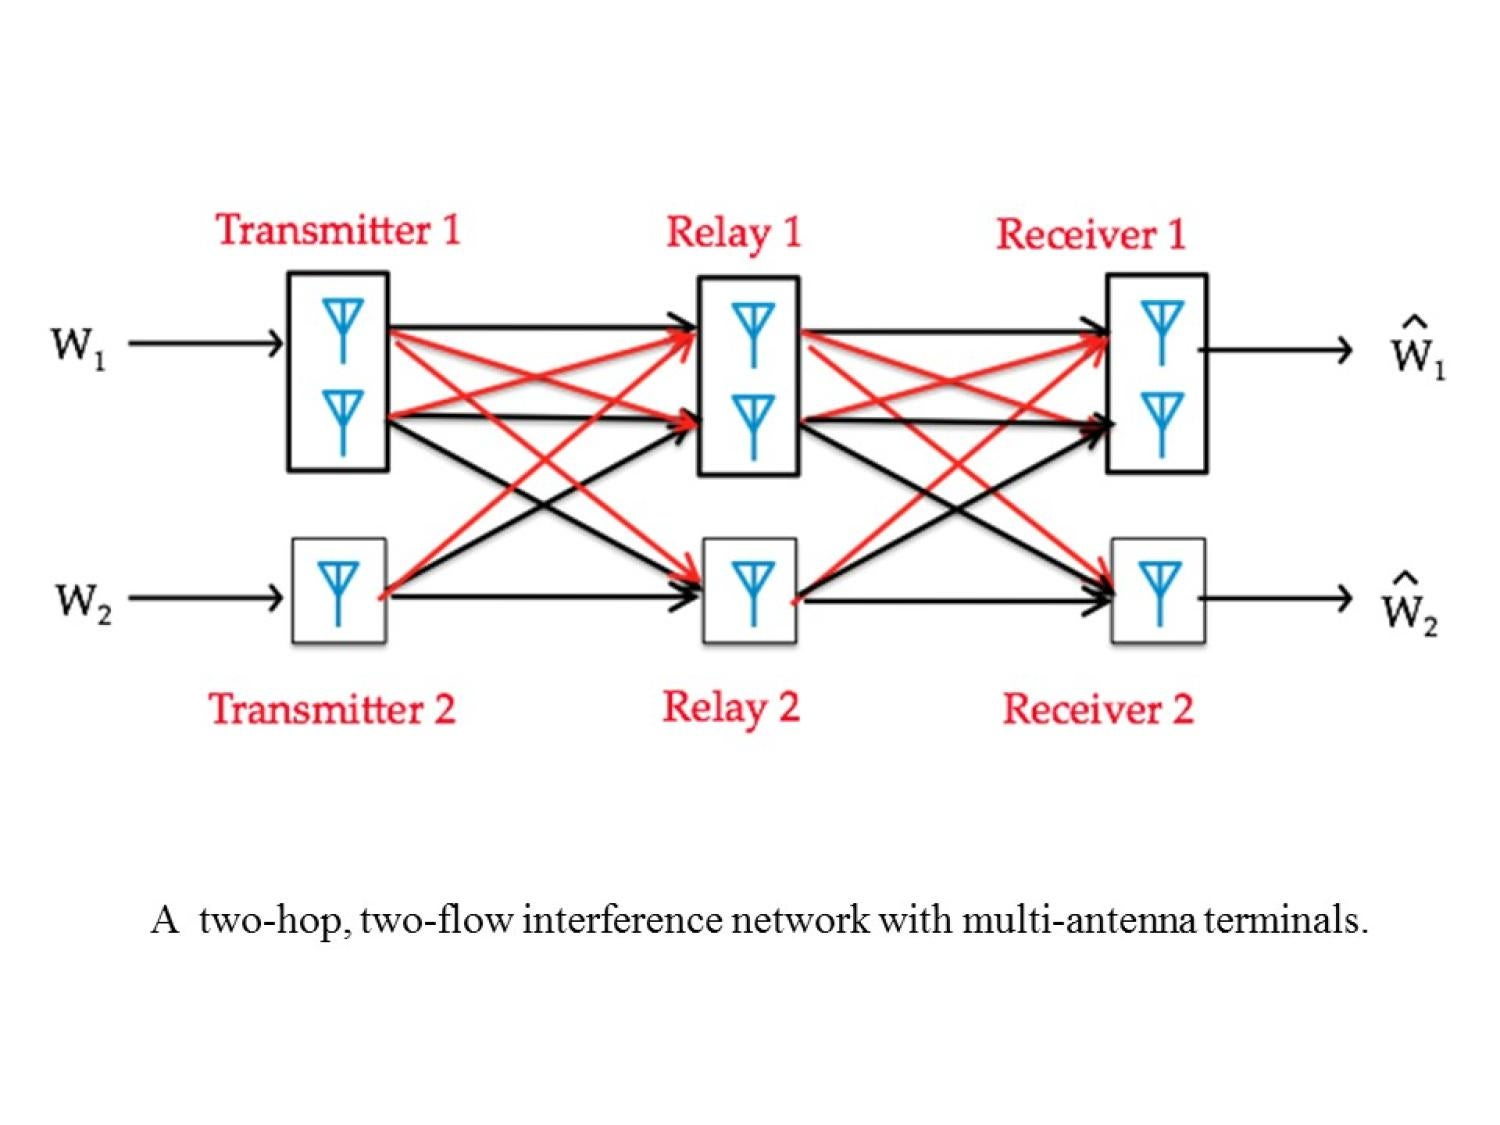 Relay Interference Networks